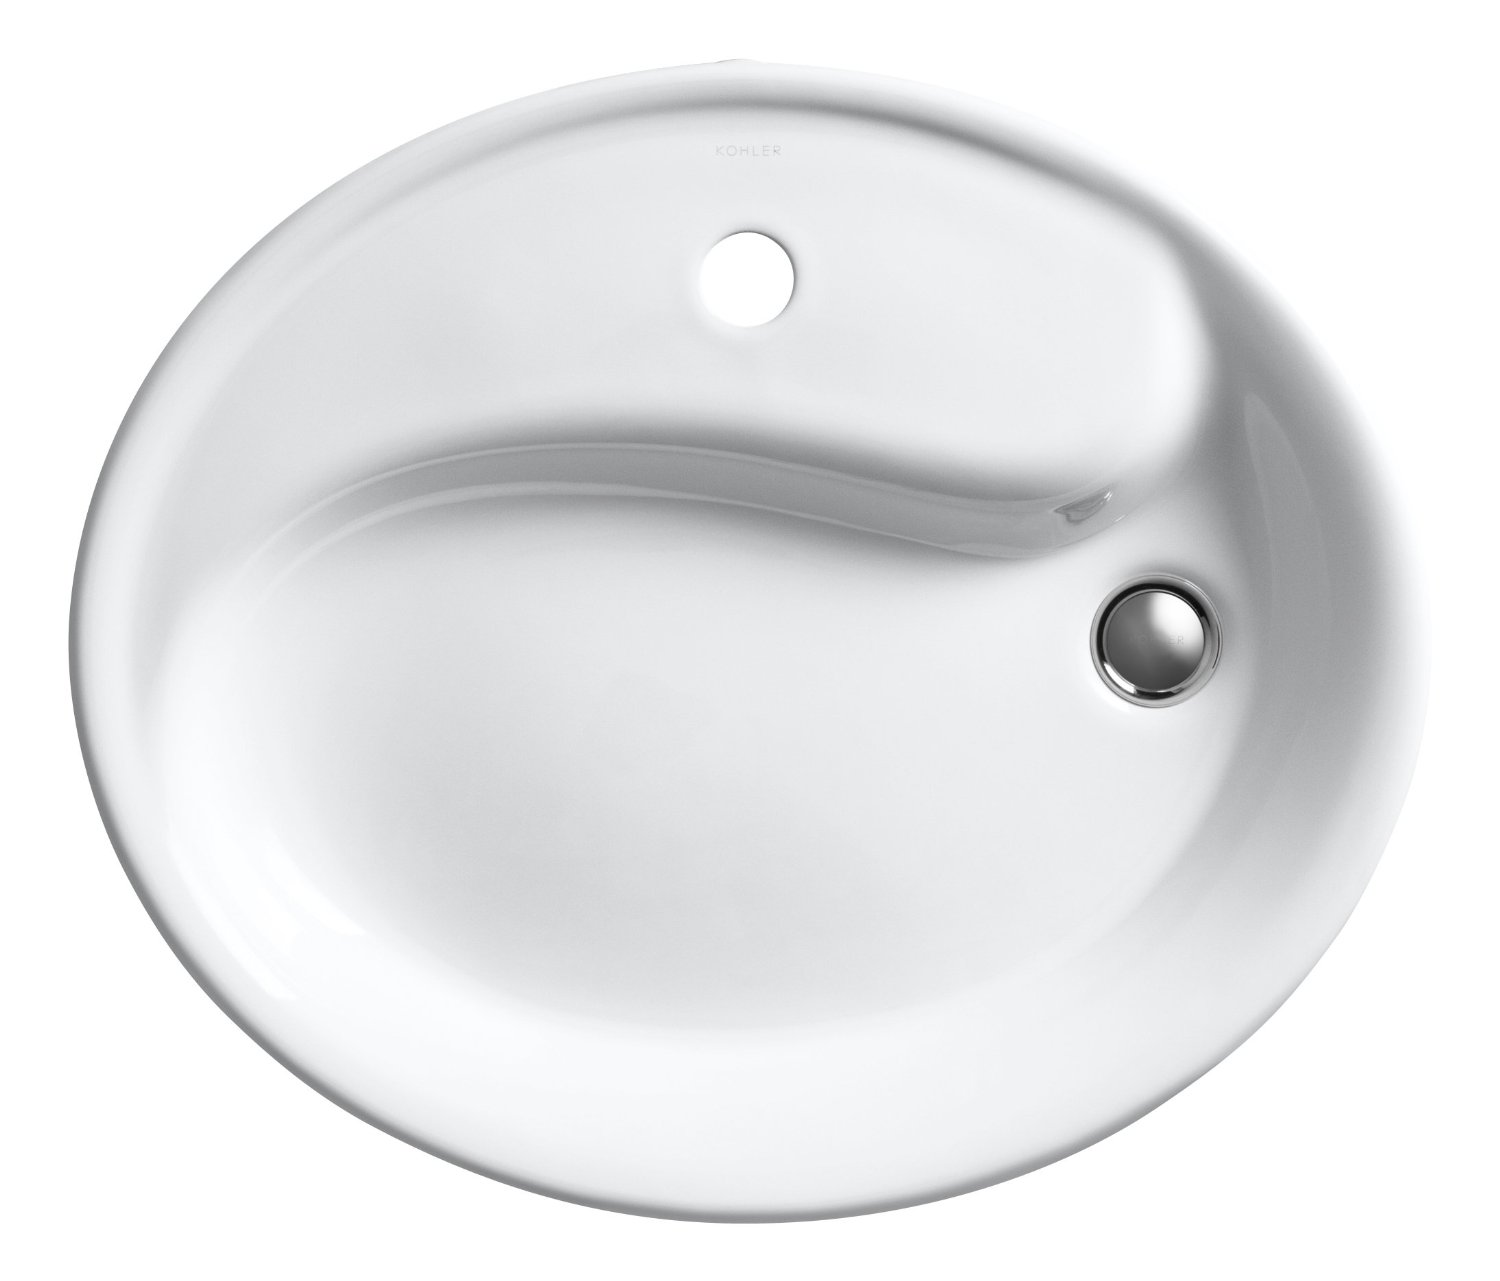 Kohler Ada Sinks : ADA/Universal Design: Wheelchair Accessible Bathroom Drop-in Sinks ...